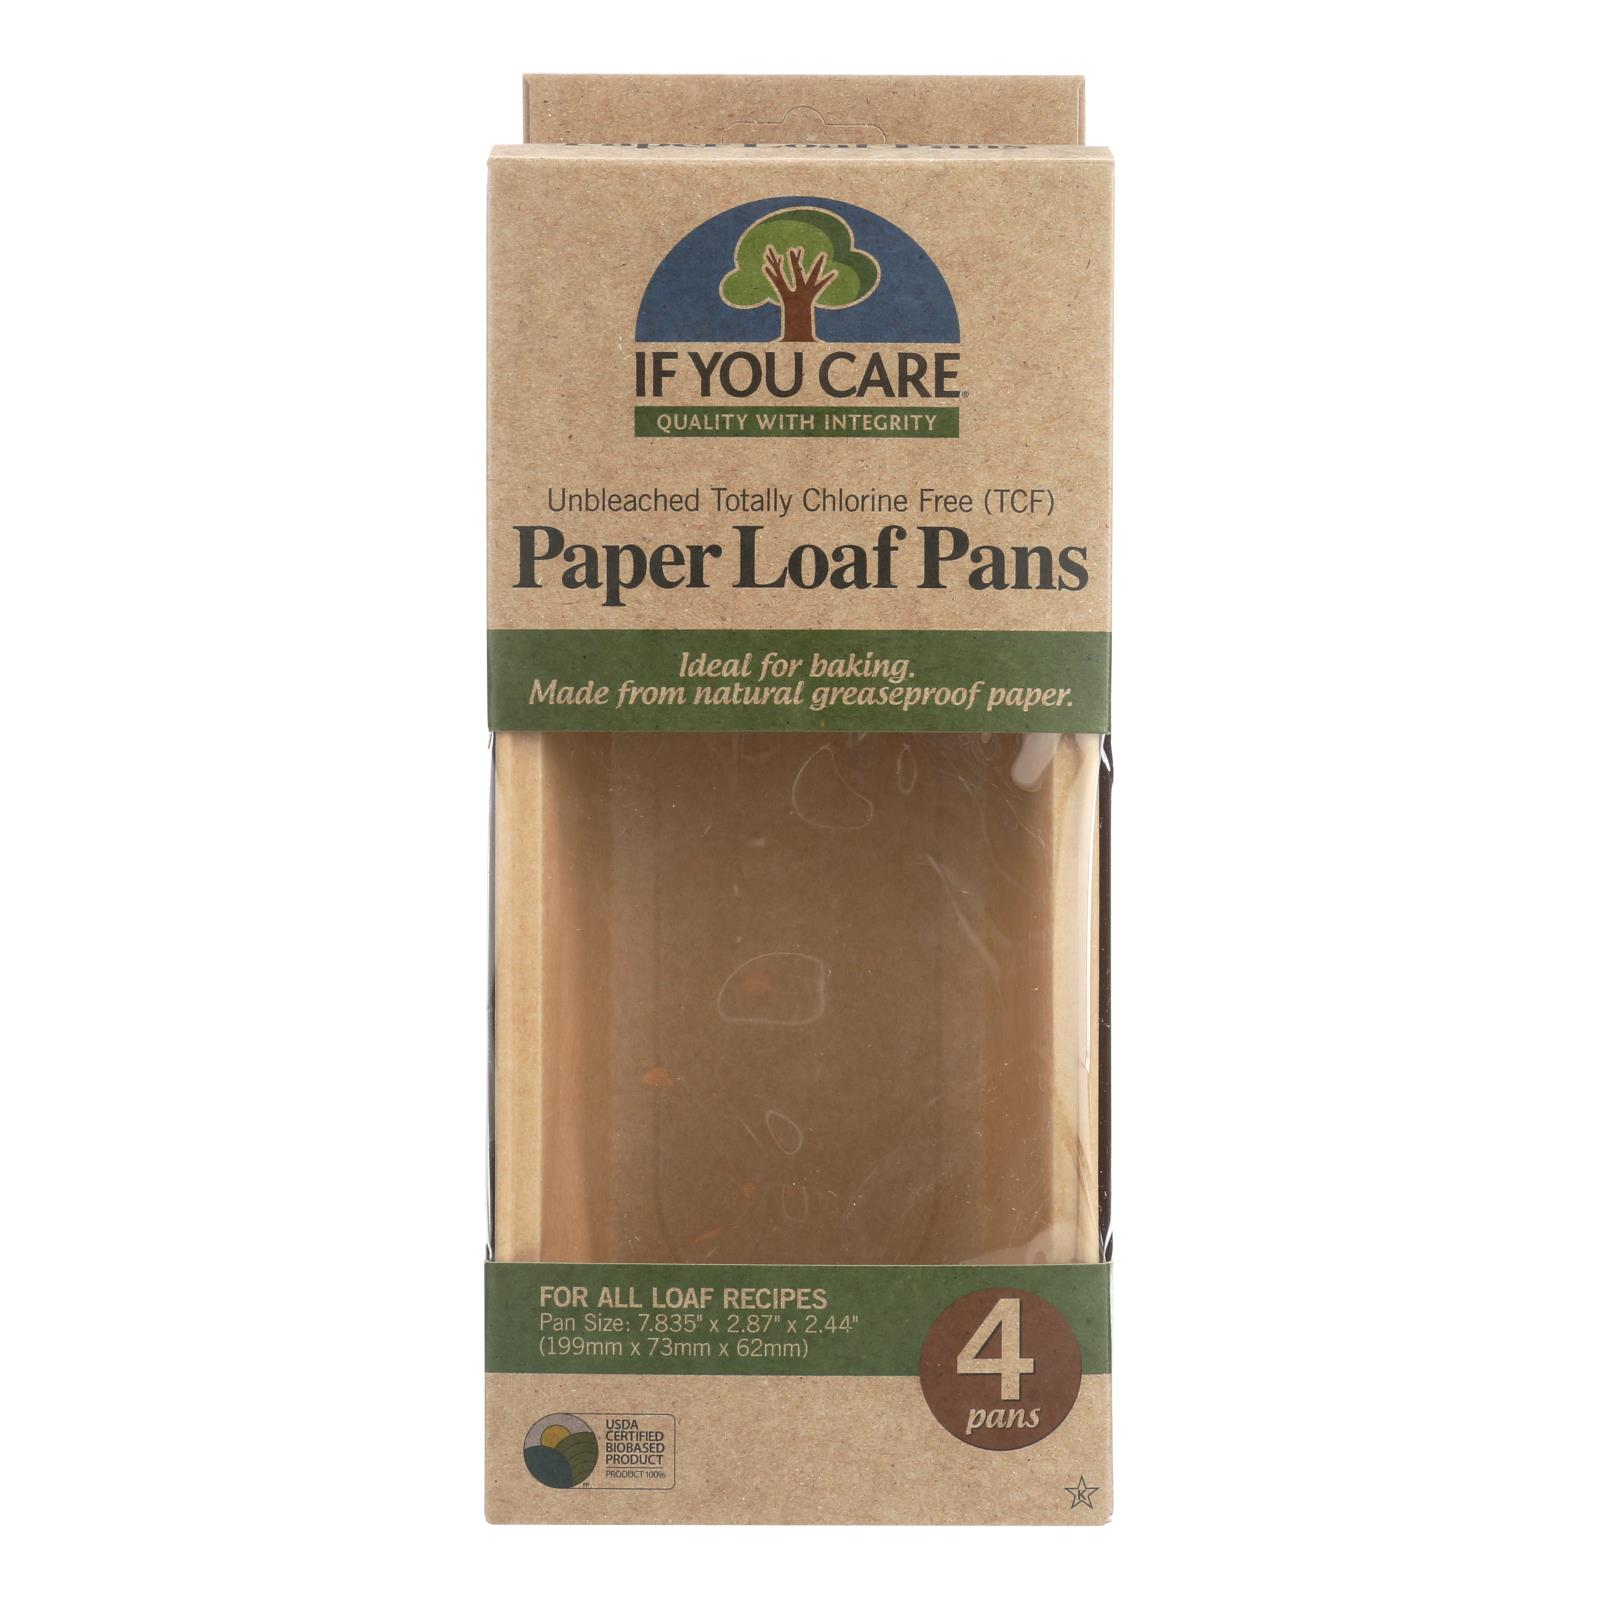 If You Care Loaf Baking Pans - Case of 6 - 4 Count